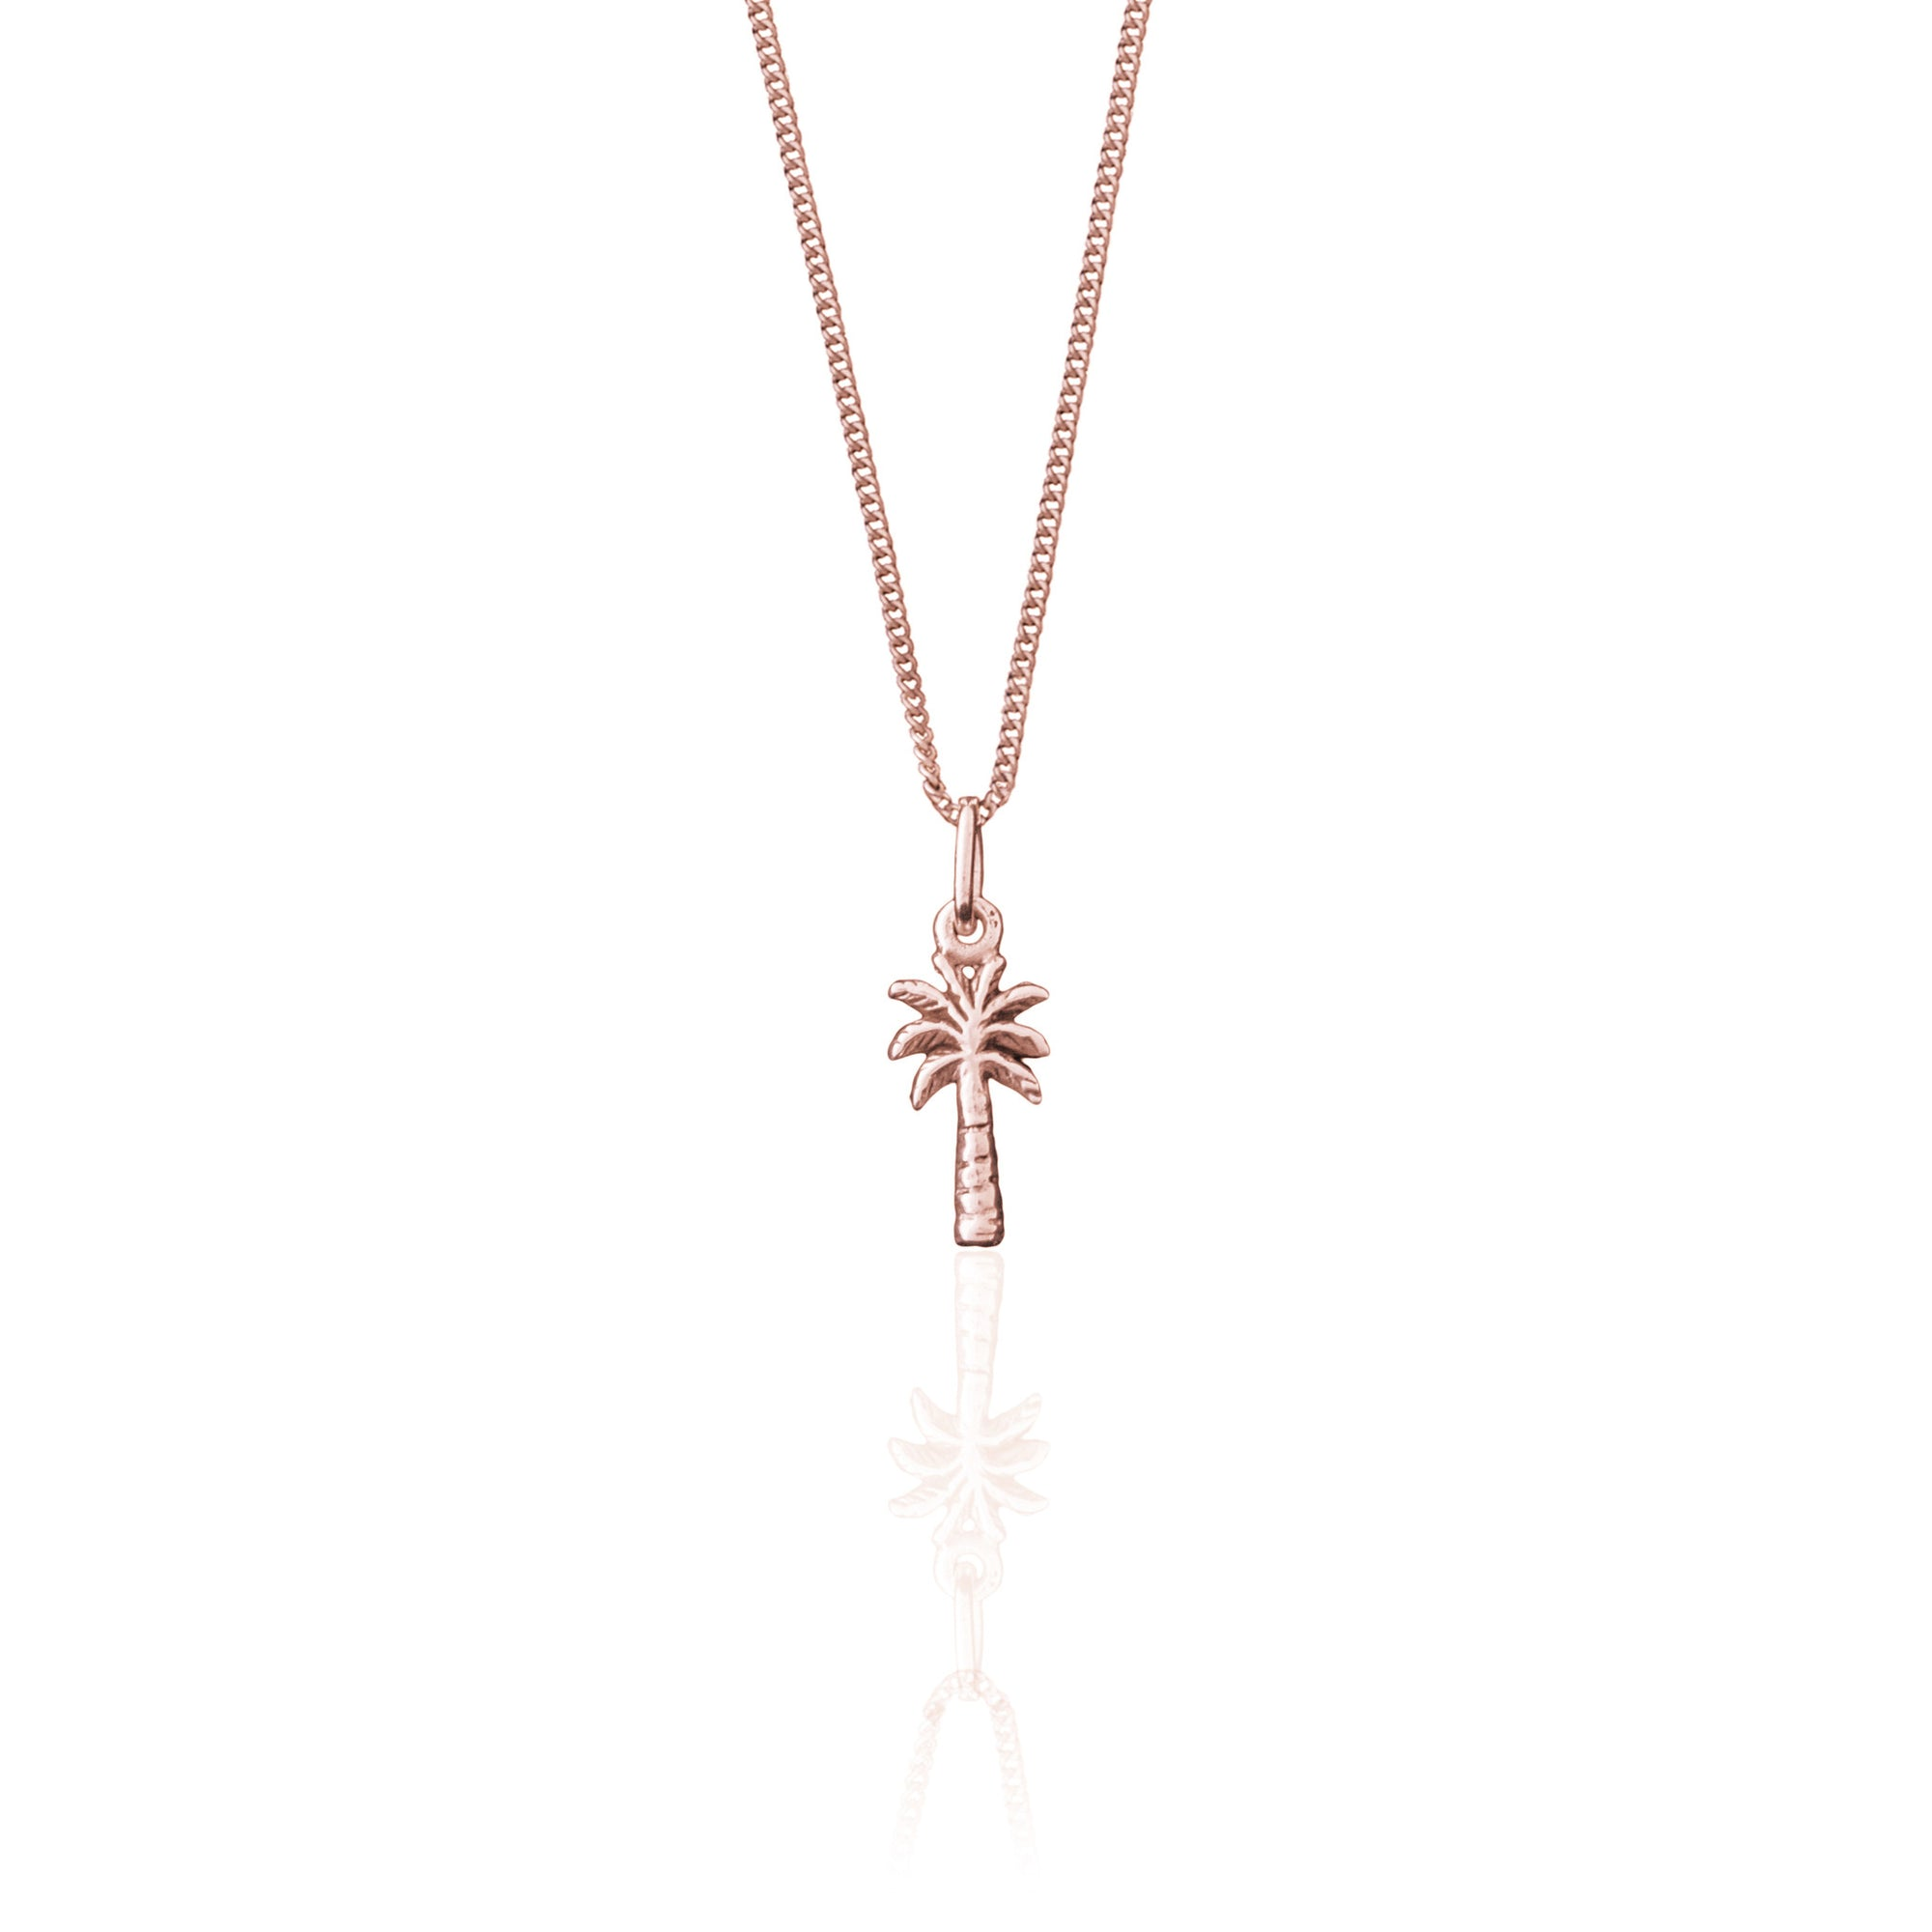 La Luna Rose Palm Springs Charm Necklace - Rose Gold